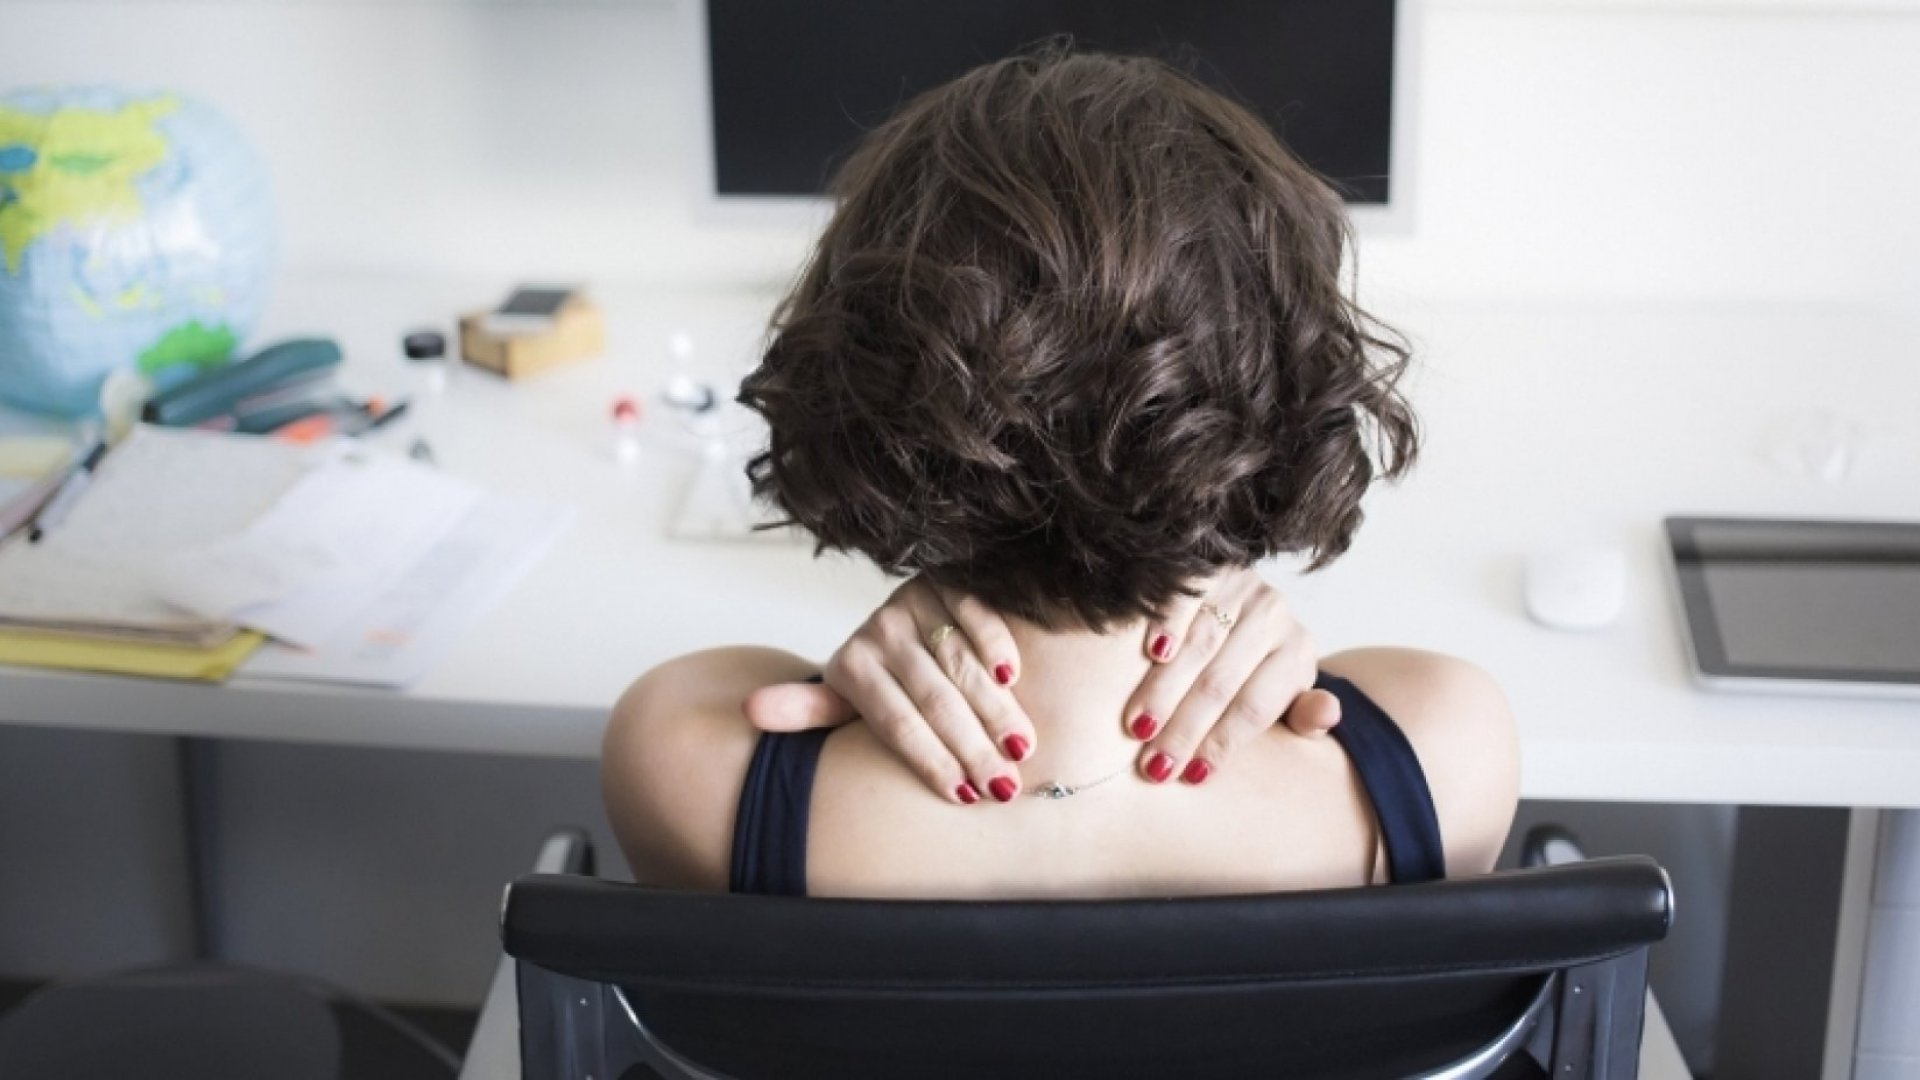 4 Ways to Keep Your Tech from Being a Pain in Your Neck